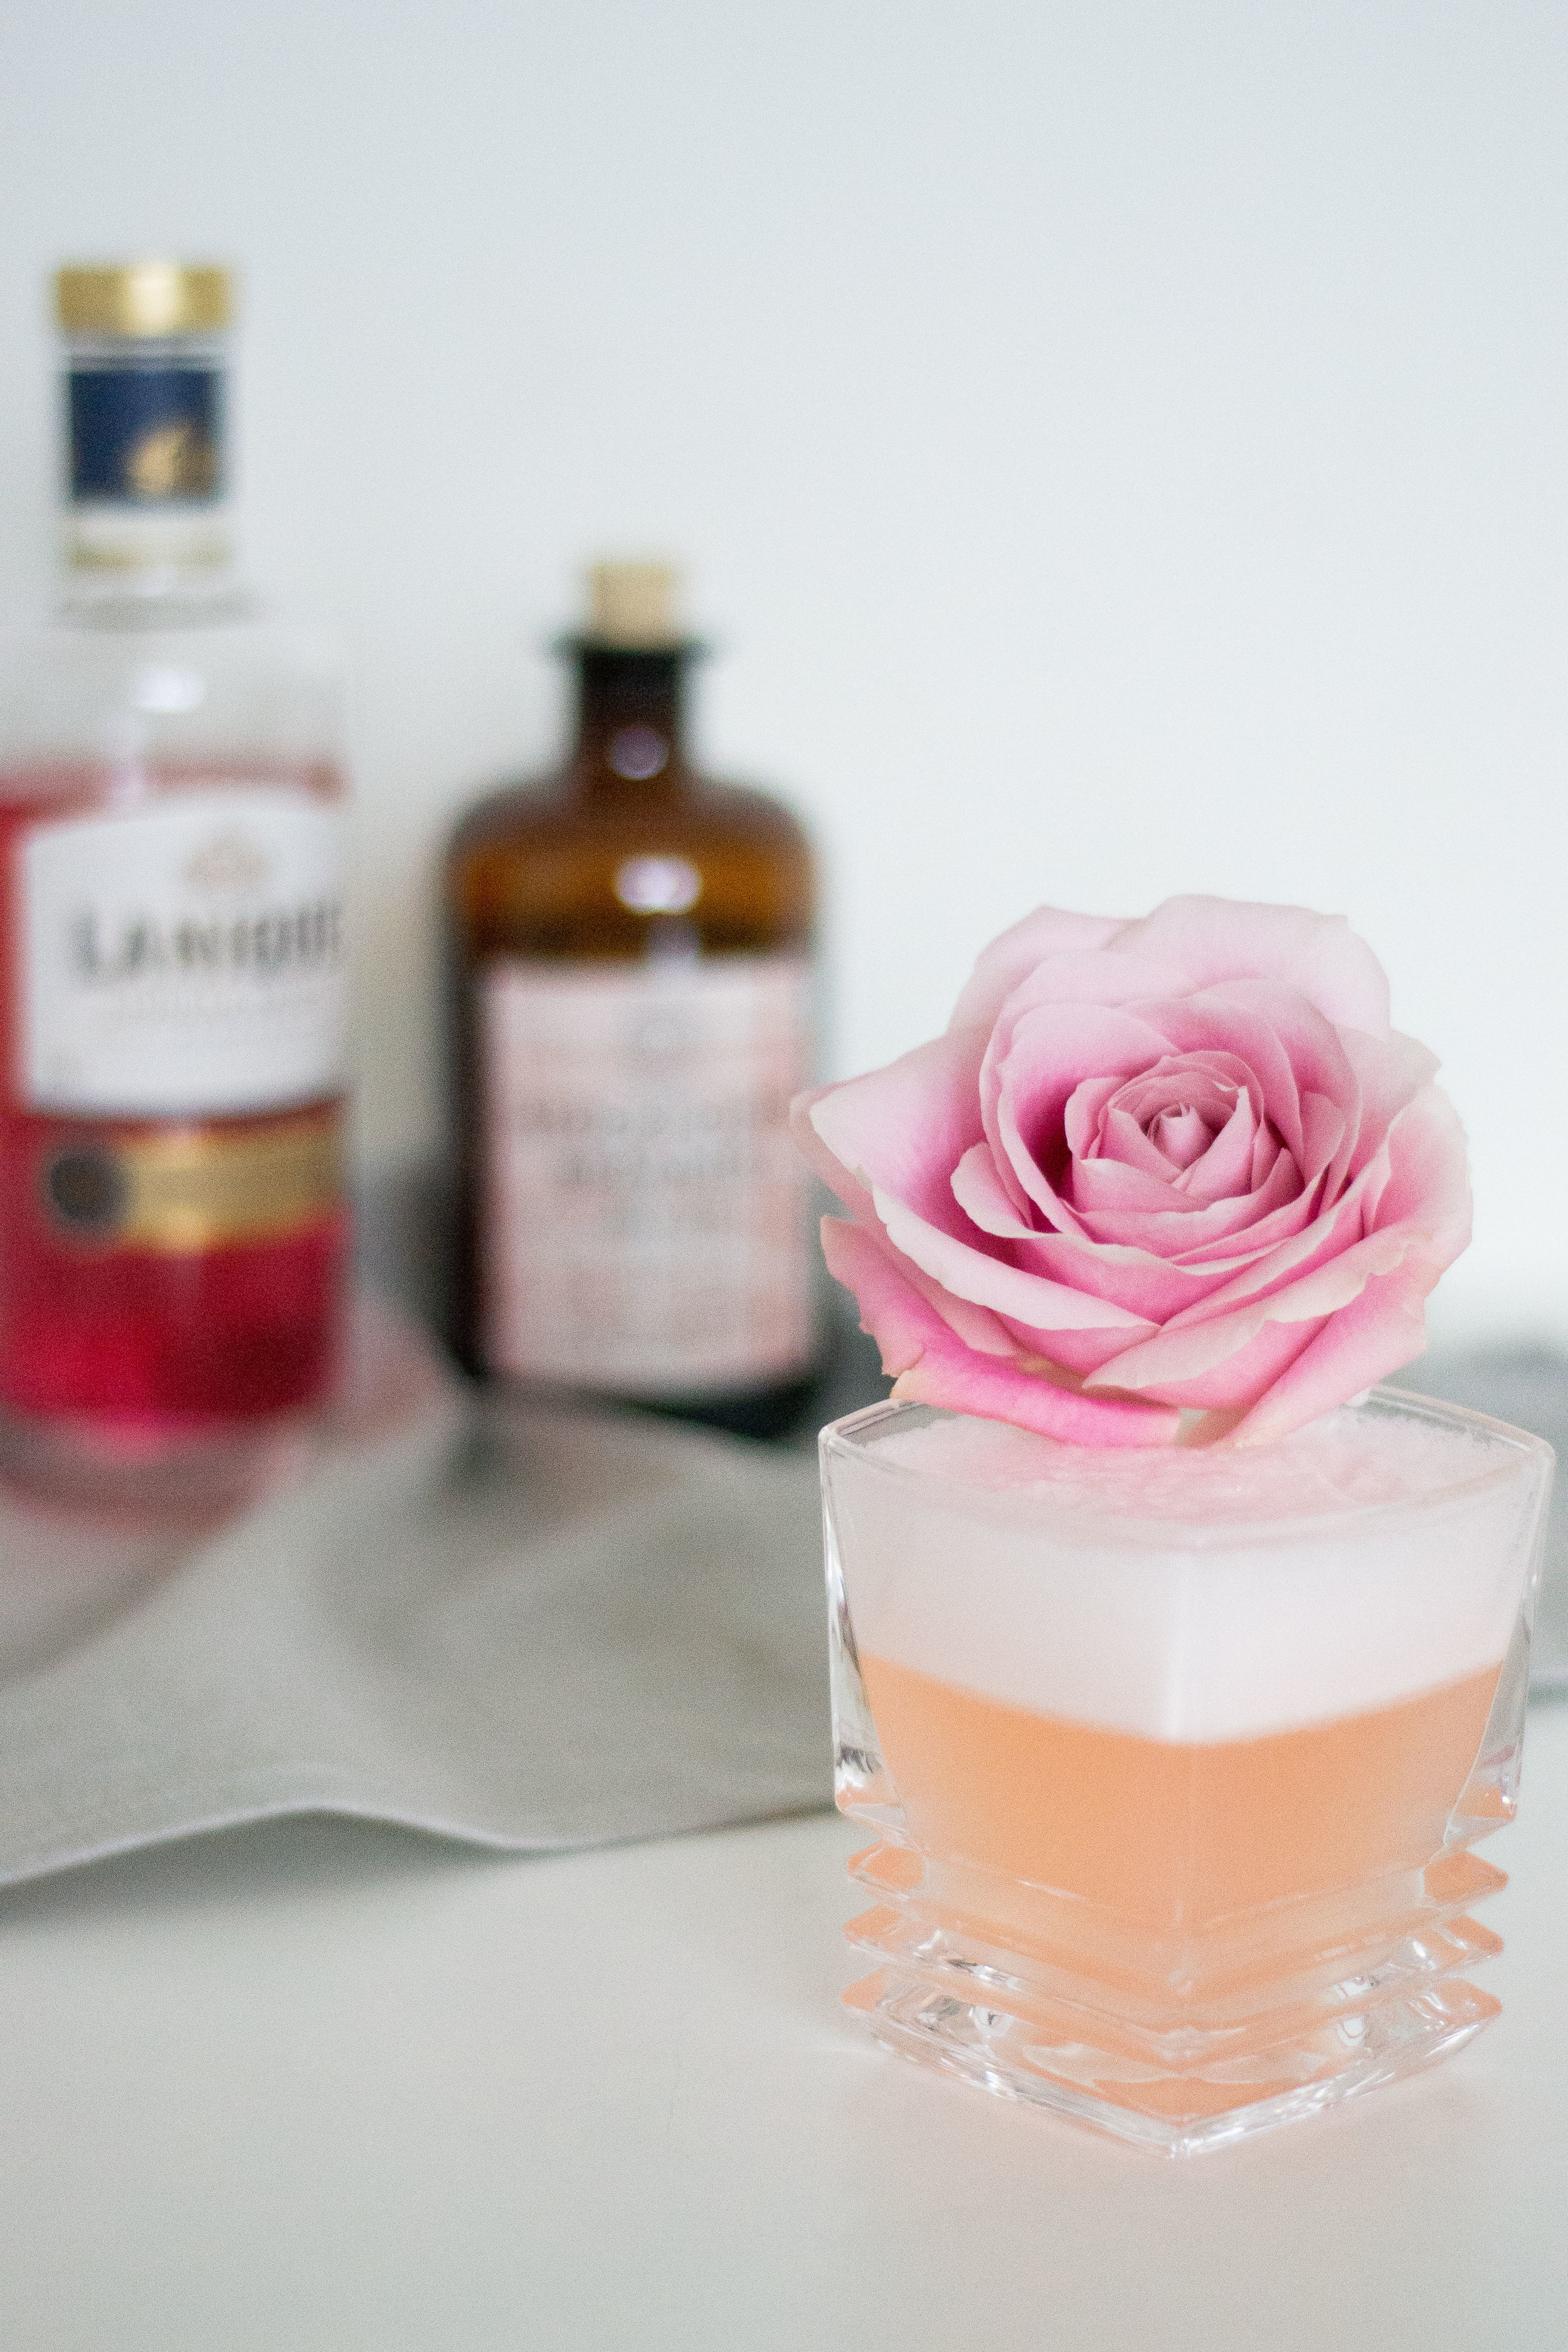 BLOOMING ROSE - - 30ml Gin (I used the lavender/sage/pink grapefruit gin from Stockholms Bränneri)- 30ml Rose liqueur (@laniquedrinks)- 30ml Lemon juice- 15ml Simple syrup (I used ~10)- Egg whiteReverse dry shake all ingredients, double strain into a beautiful rocks glass (a gift from @theelancollective). Garnish with a rose.